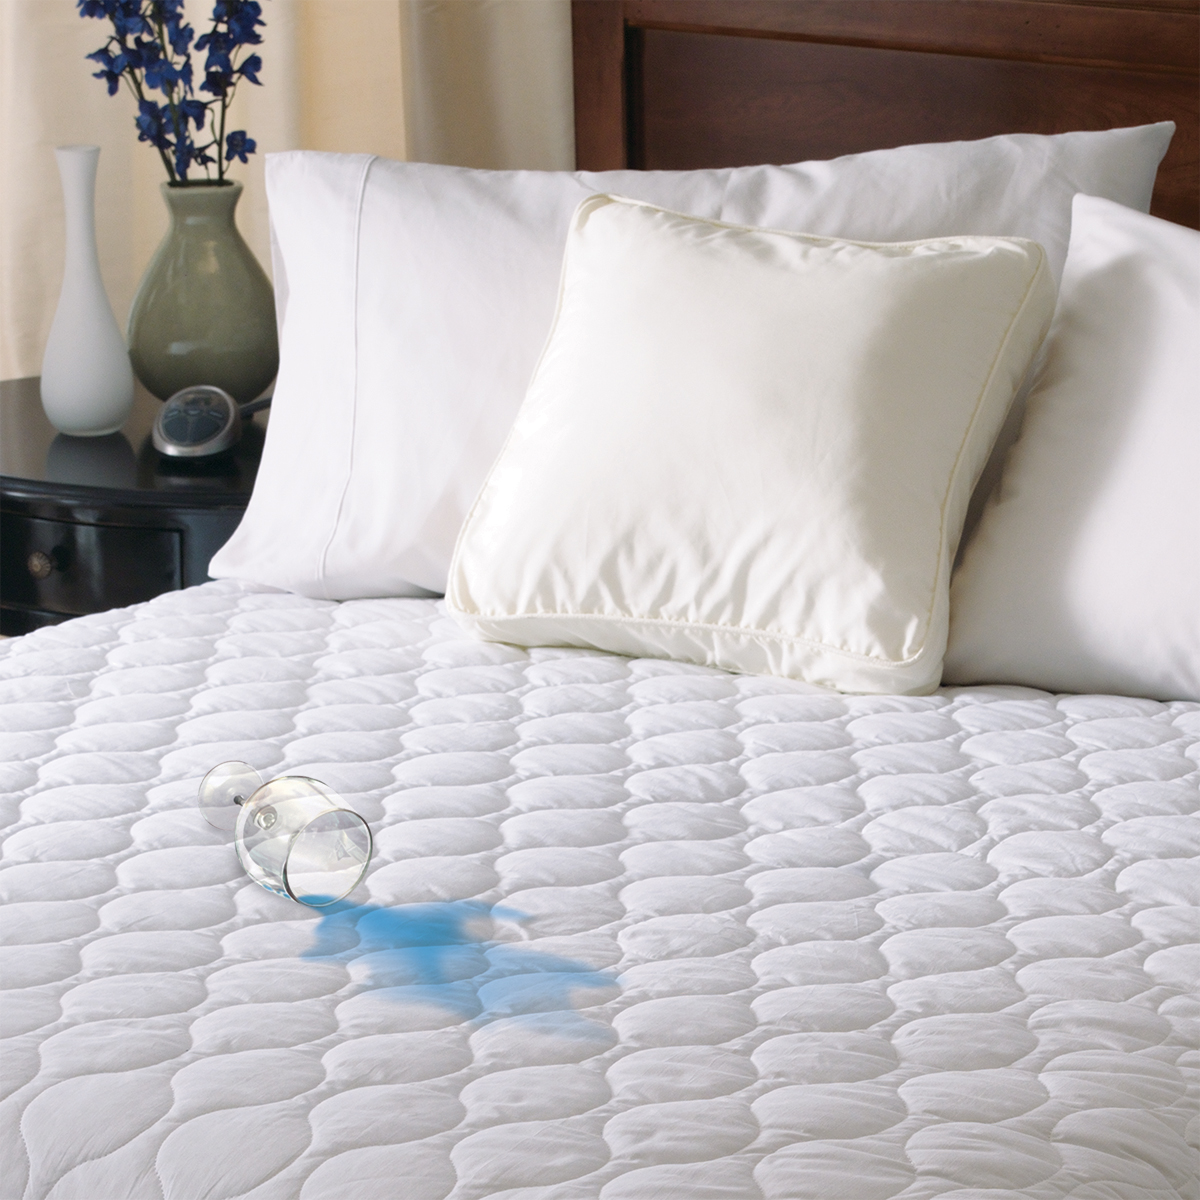 Sunbeam Water-Resistant Heated Mattress Pad with 20 Heat Settings & Timer, Multiple Sizes (MSU6STST00012A4)